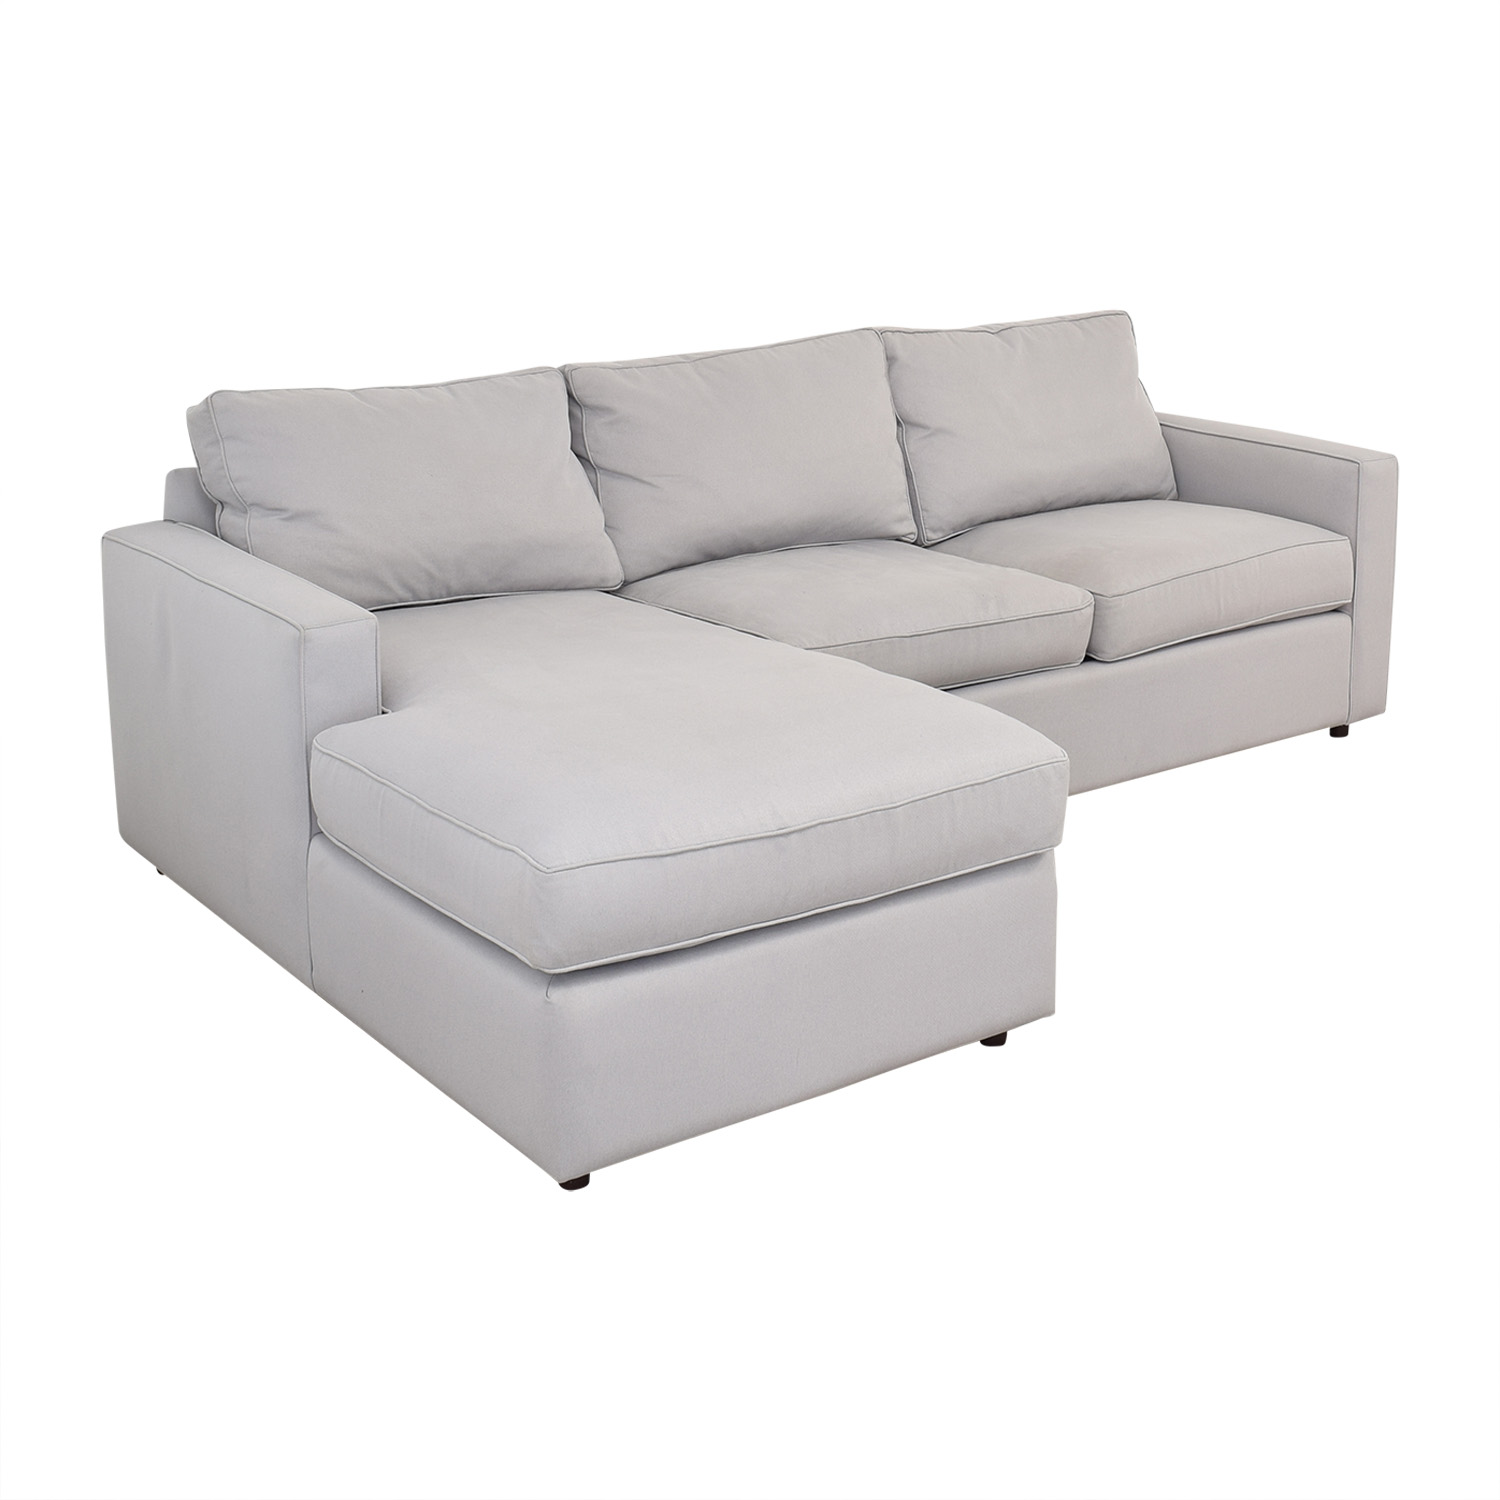 buy Room & Board Sofa with Chaise Room & Board